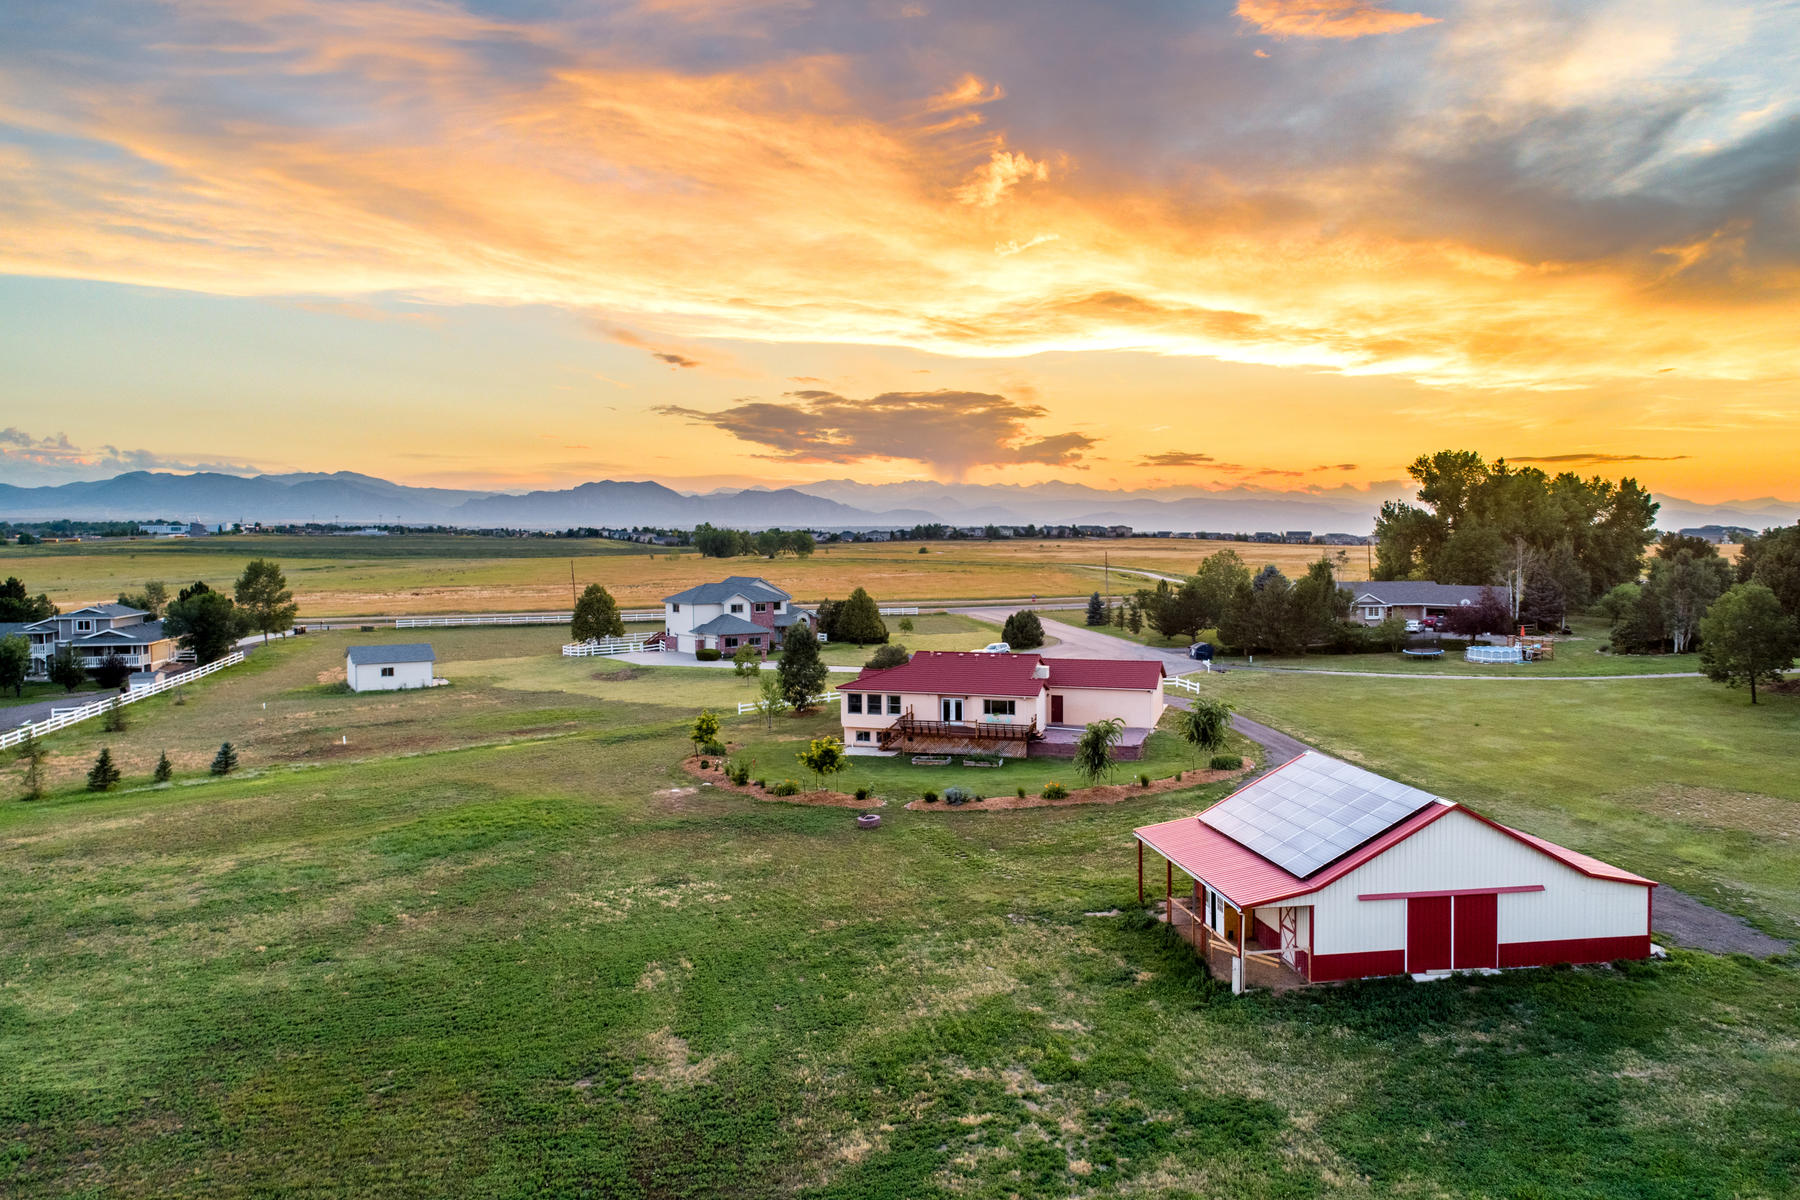 Single Family Homes for Sale at Custom Ranch on 2.16 Acres Surrounded by Open Space 3450 W 147th Court, Broomfield, Colorado 80023 United States